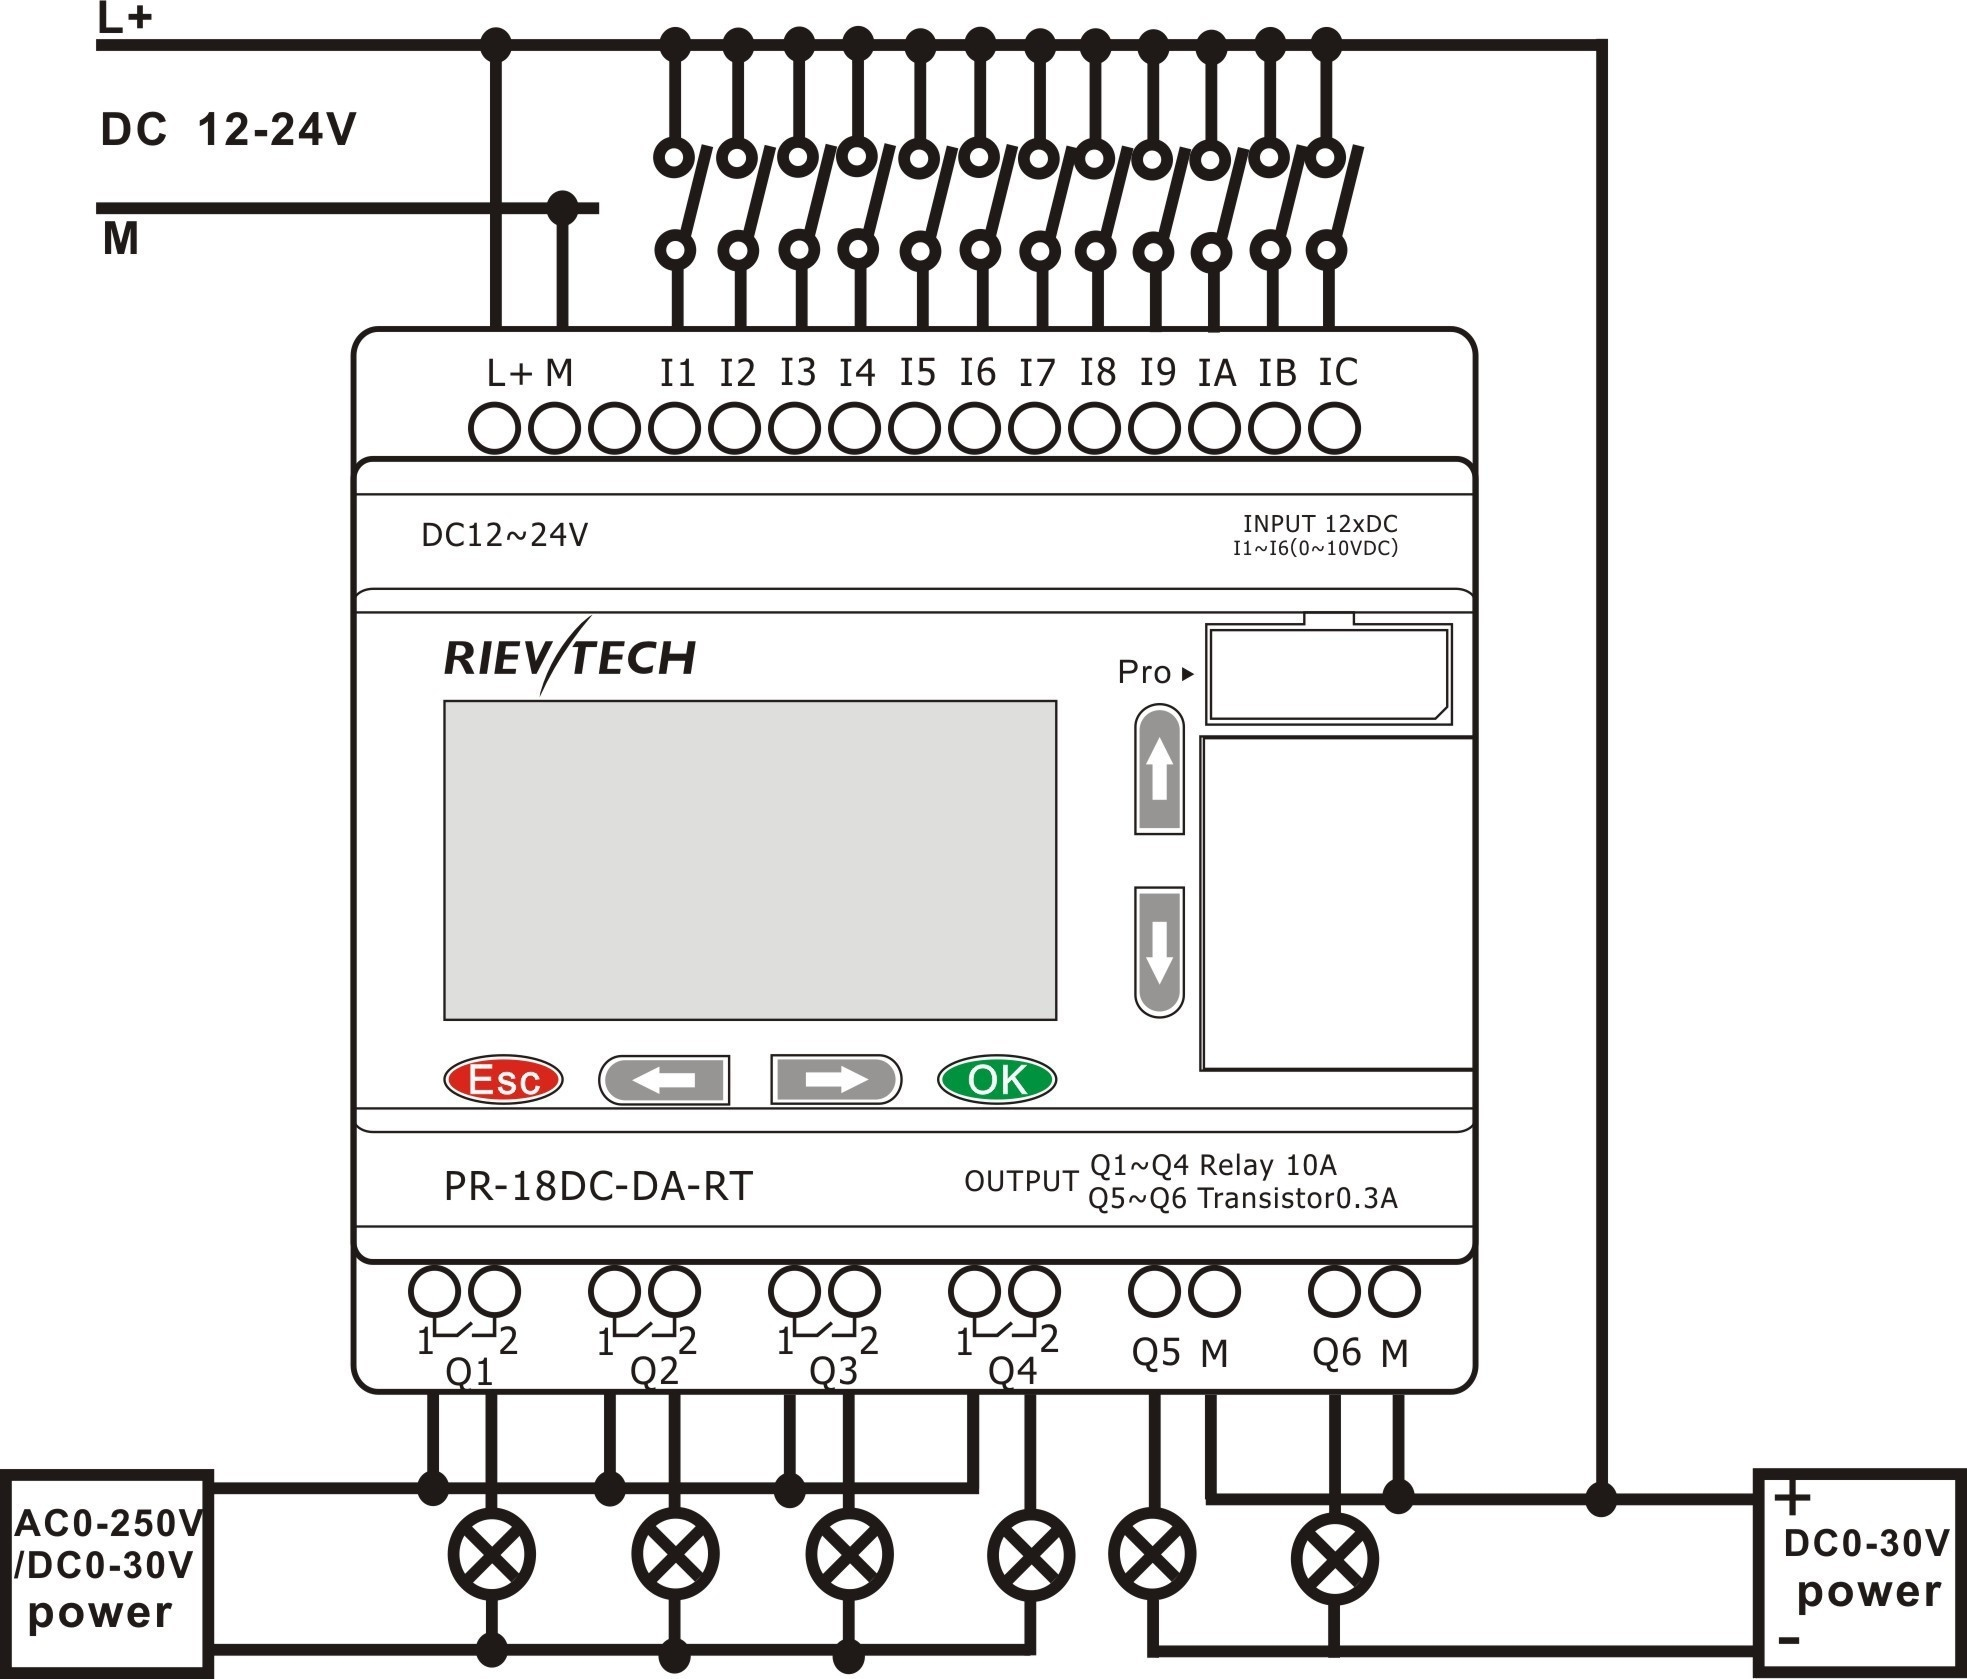 hight resolution of plc panel wiring diagram pdf free wiring diagram plc wiring diagrams pdf plc panel wiring diagram